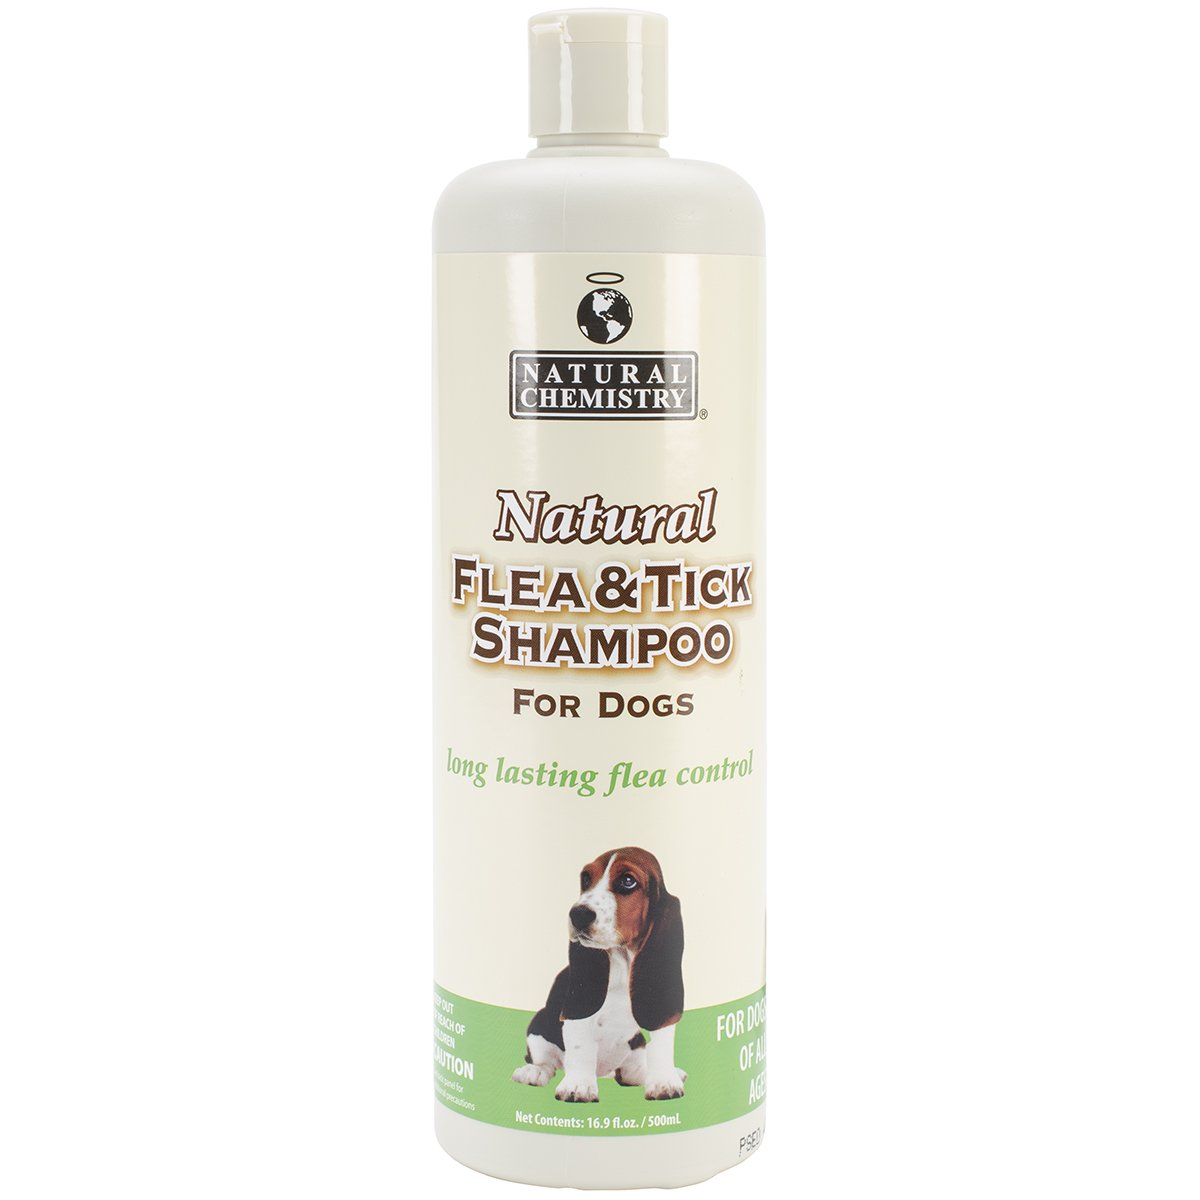 Natural Chemistry Flea & Tick Shamp 16oz